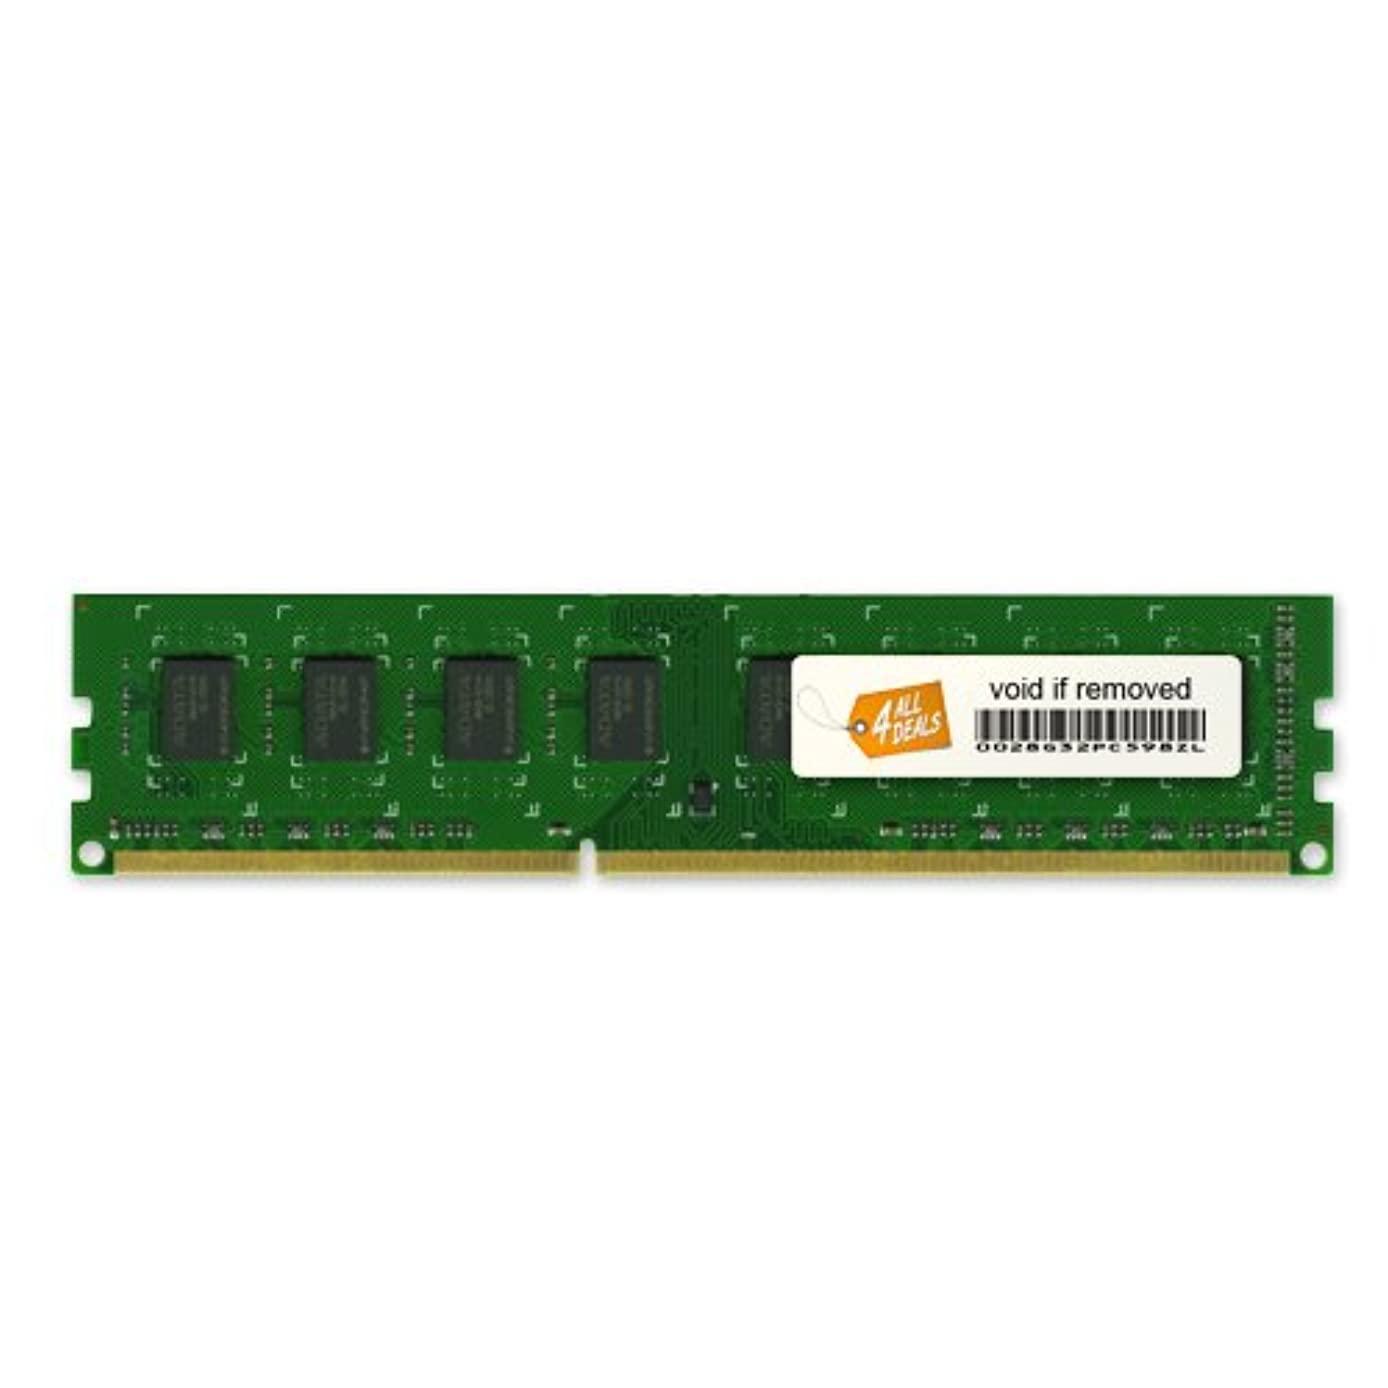 4AllDeals 8GB 2X4GB Memory RAM for Dell Precision Workstation T1500, T3500, T1600 240pin PC3-10600 1333MHz DDR3 DIMM Memory Module Upgrade